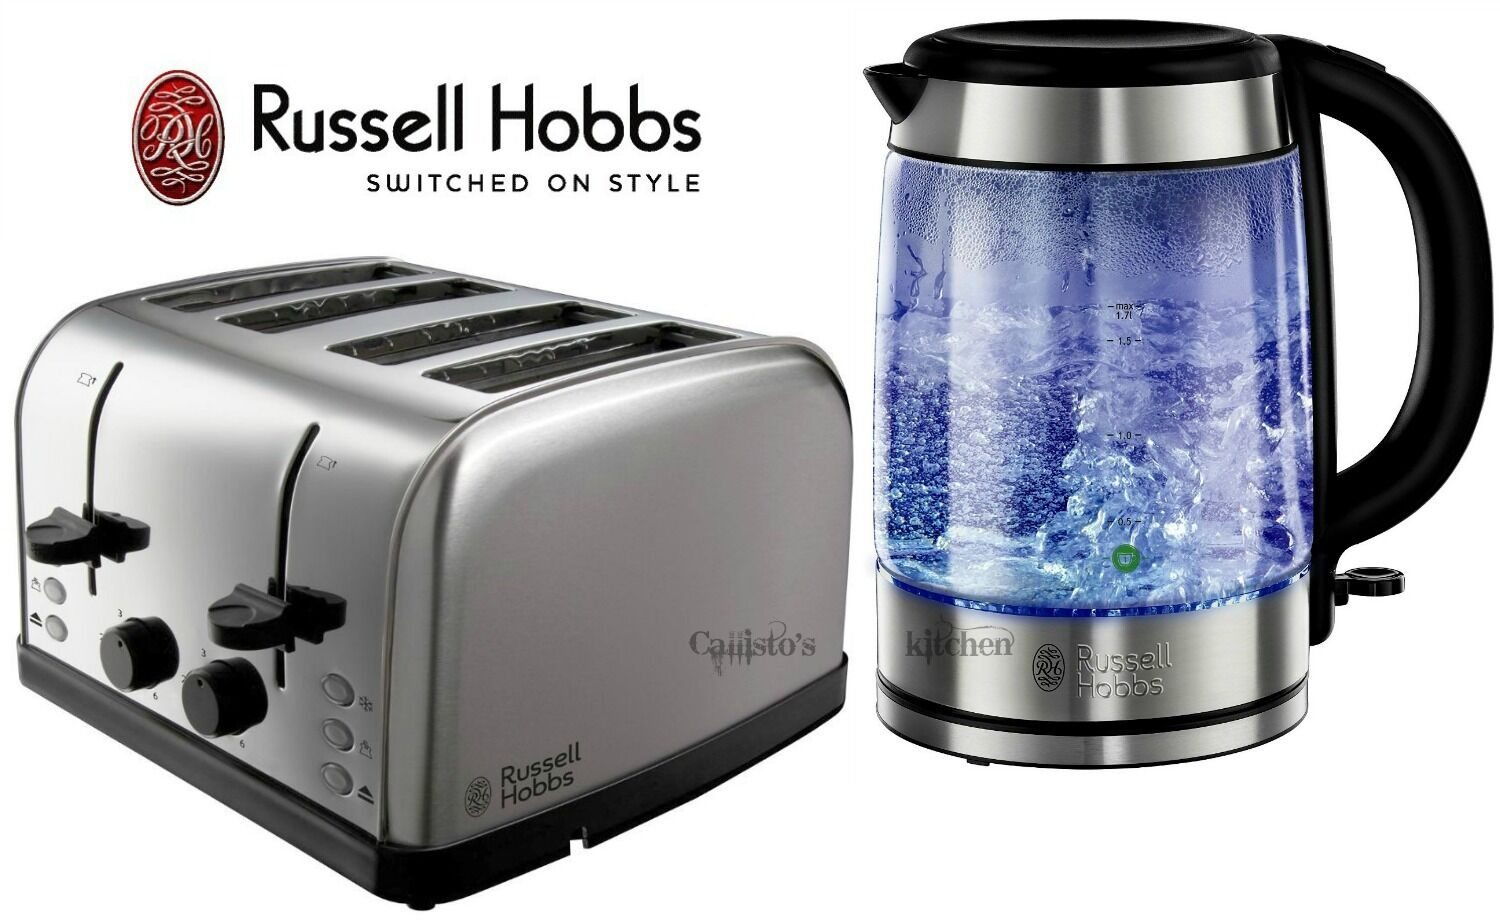 kettle and toaster set russell hobbs futura 4 slice toaster and glass kettle new ebay. Black Bedroom Furniture Sets. Home Design Ideas